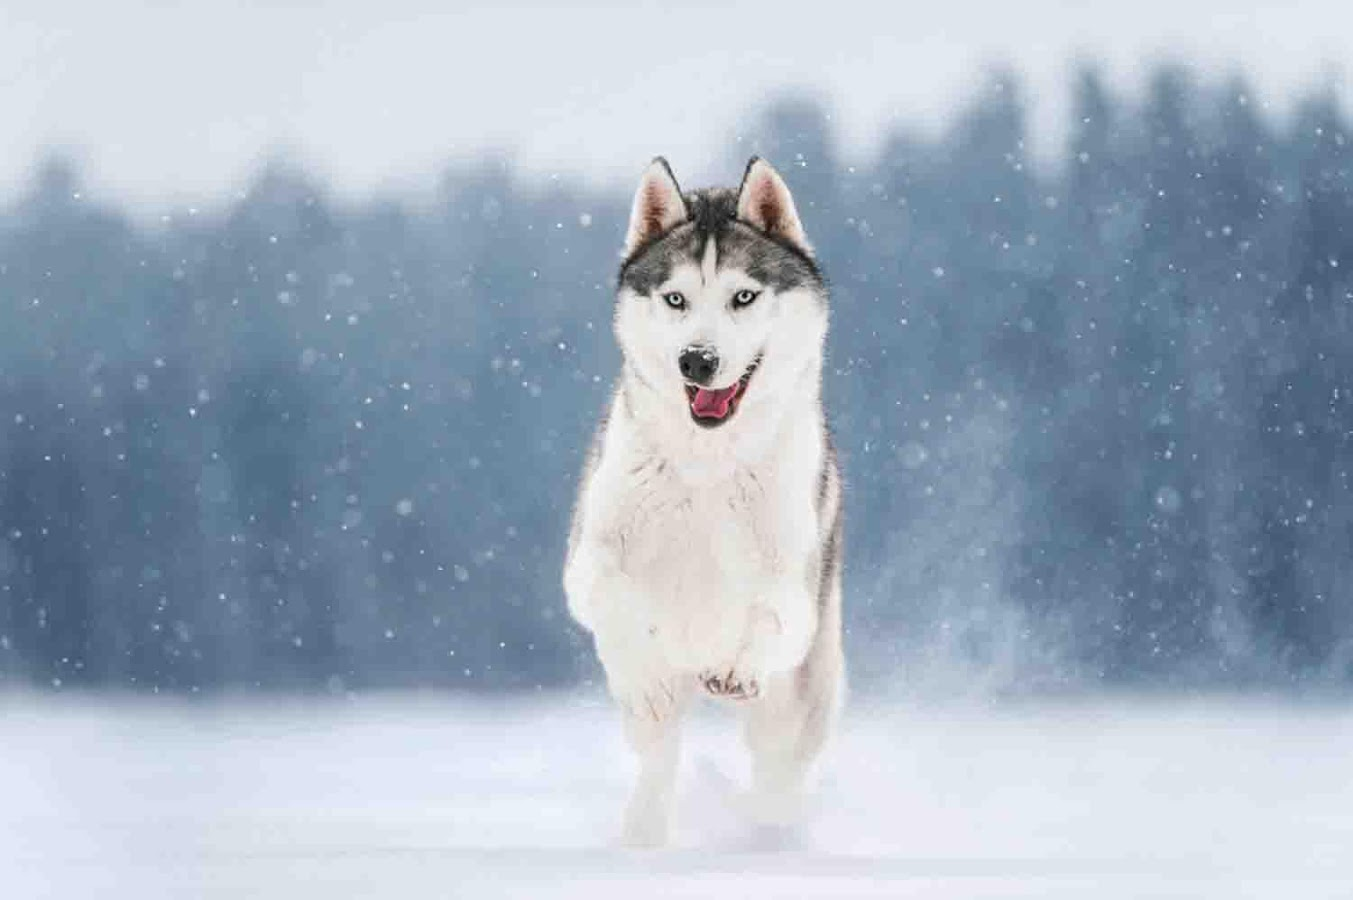 Cute Husky Wallpaper - Android Apps on Google Play